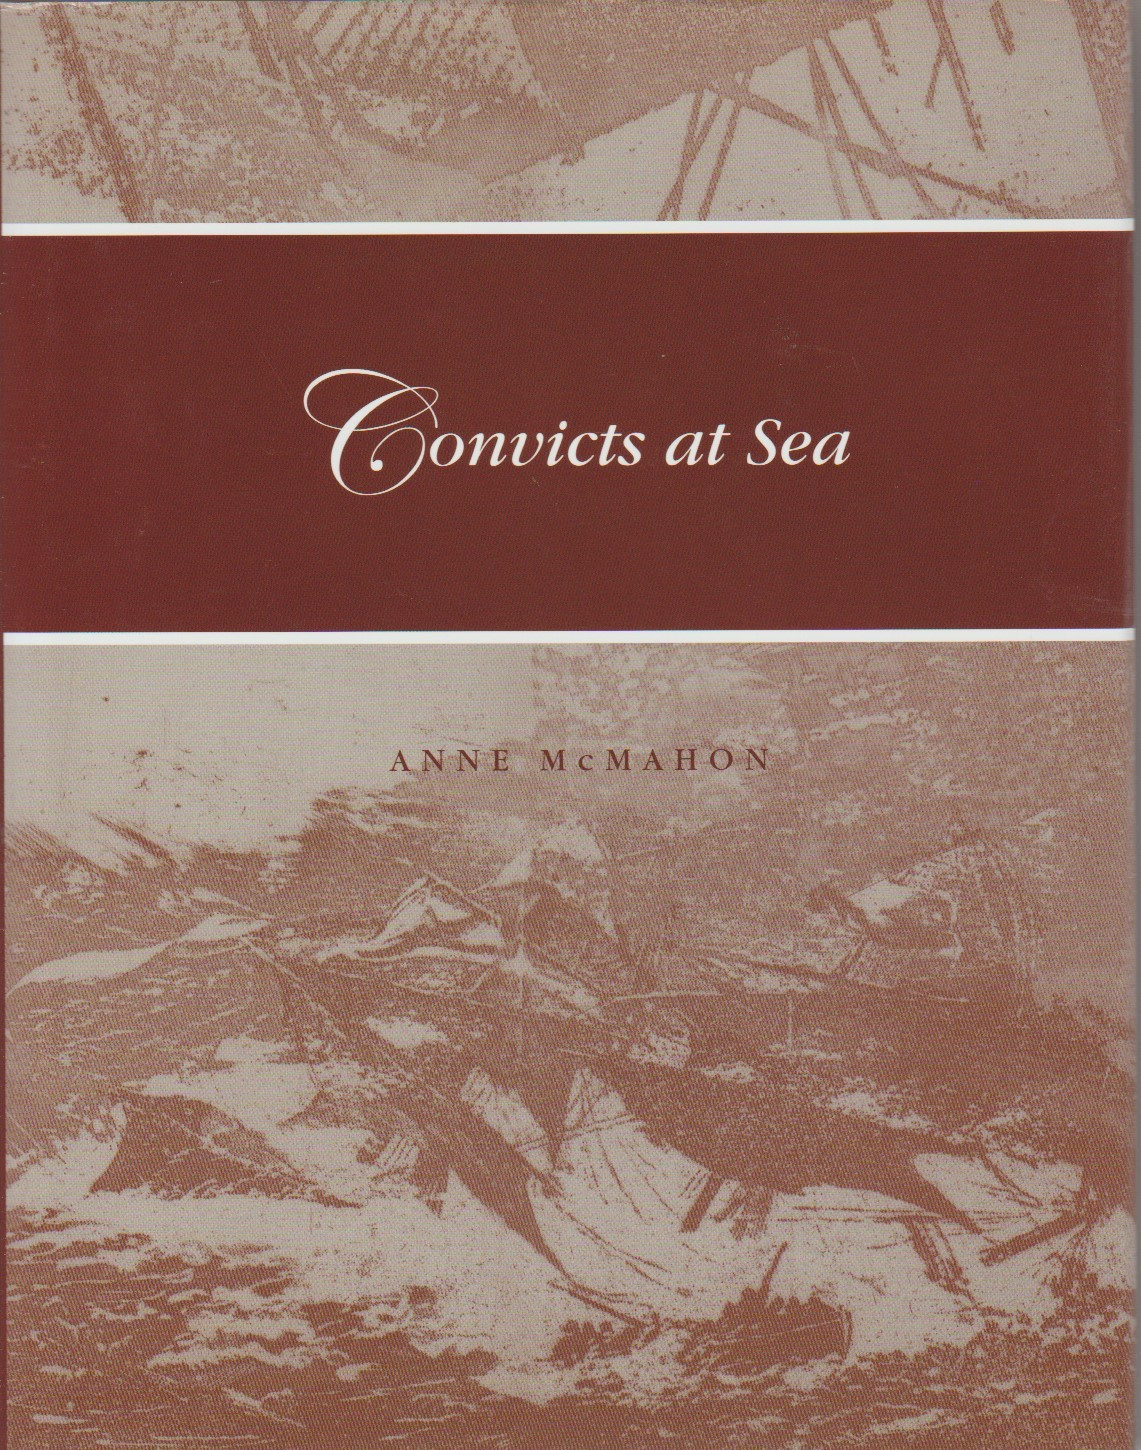 Convicts at Sea - the Voyages of the Irish convict transports to Van Diemen's Land, 1810-1853